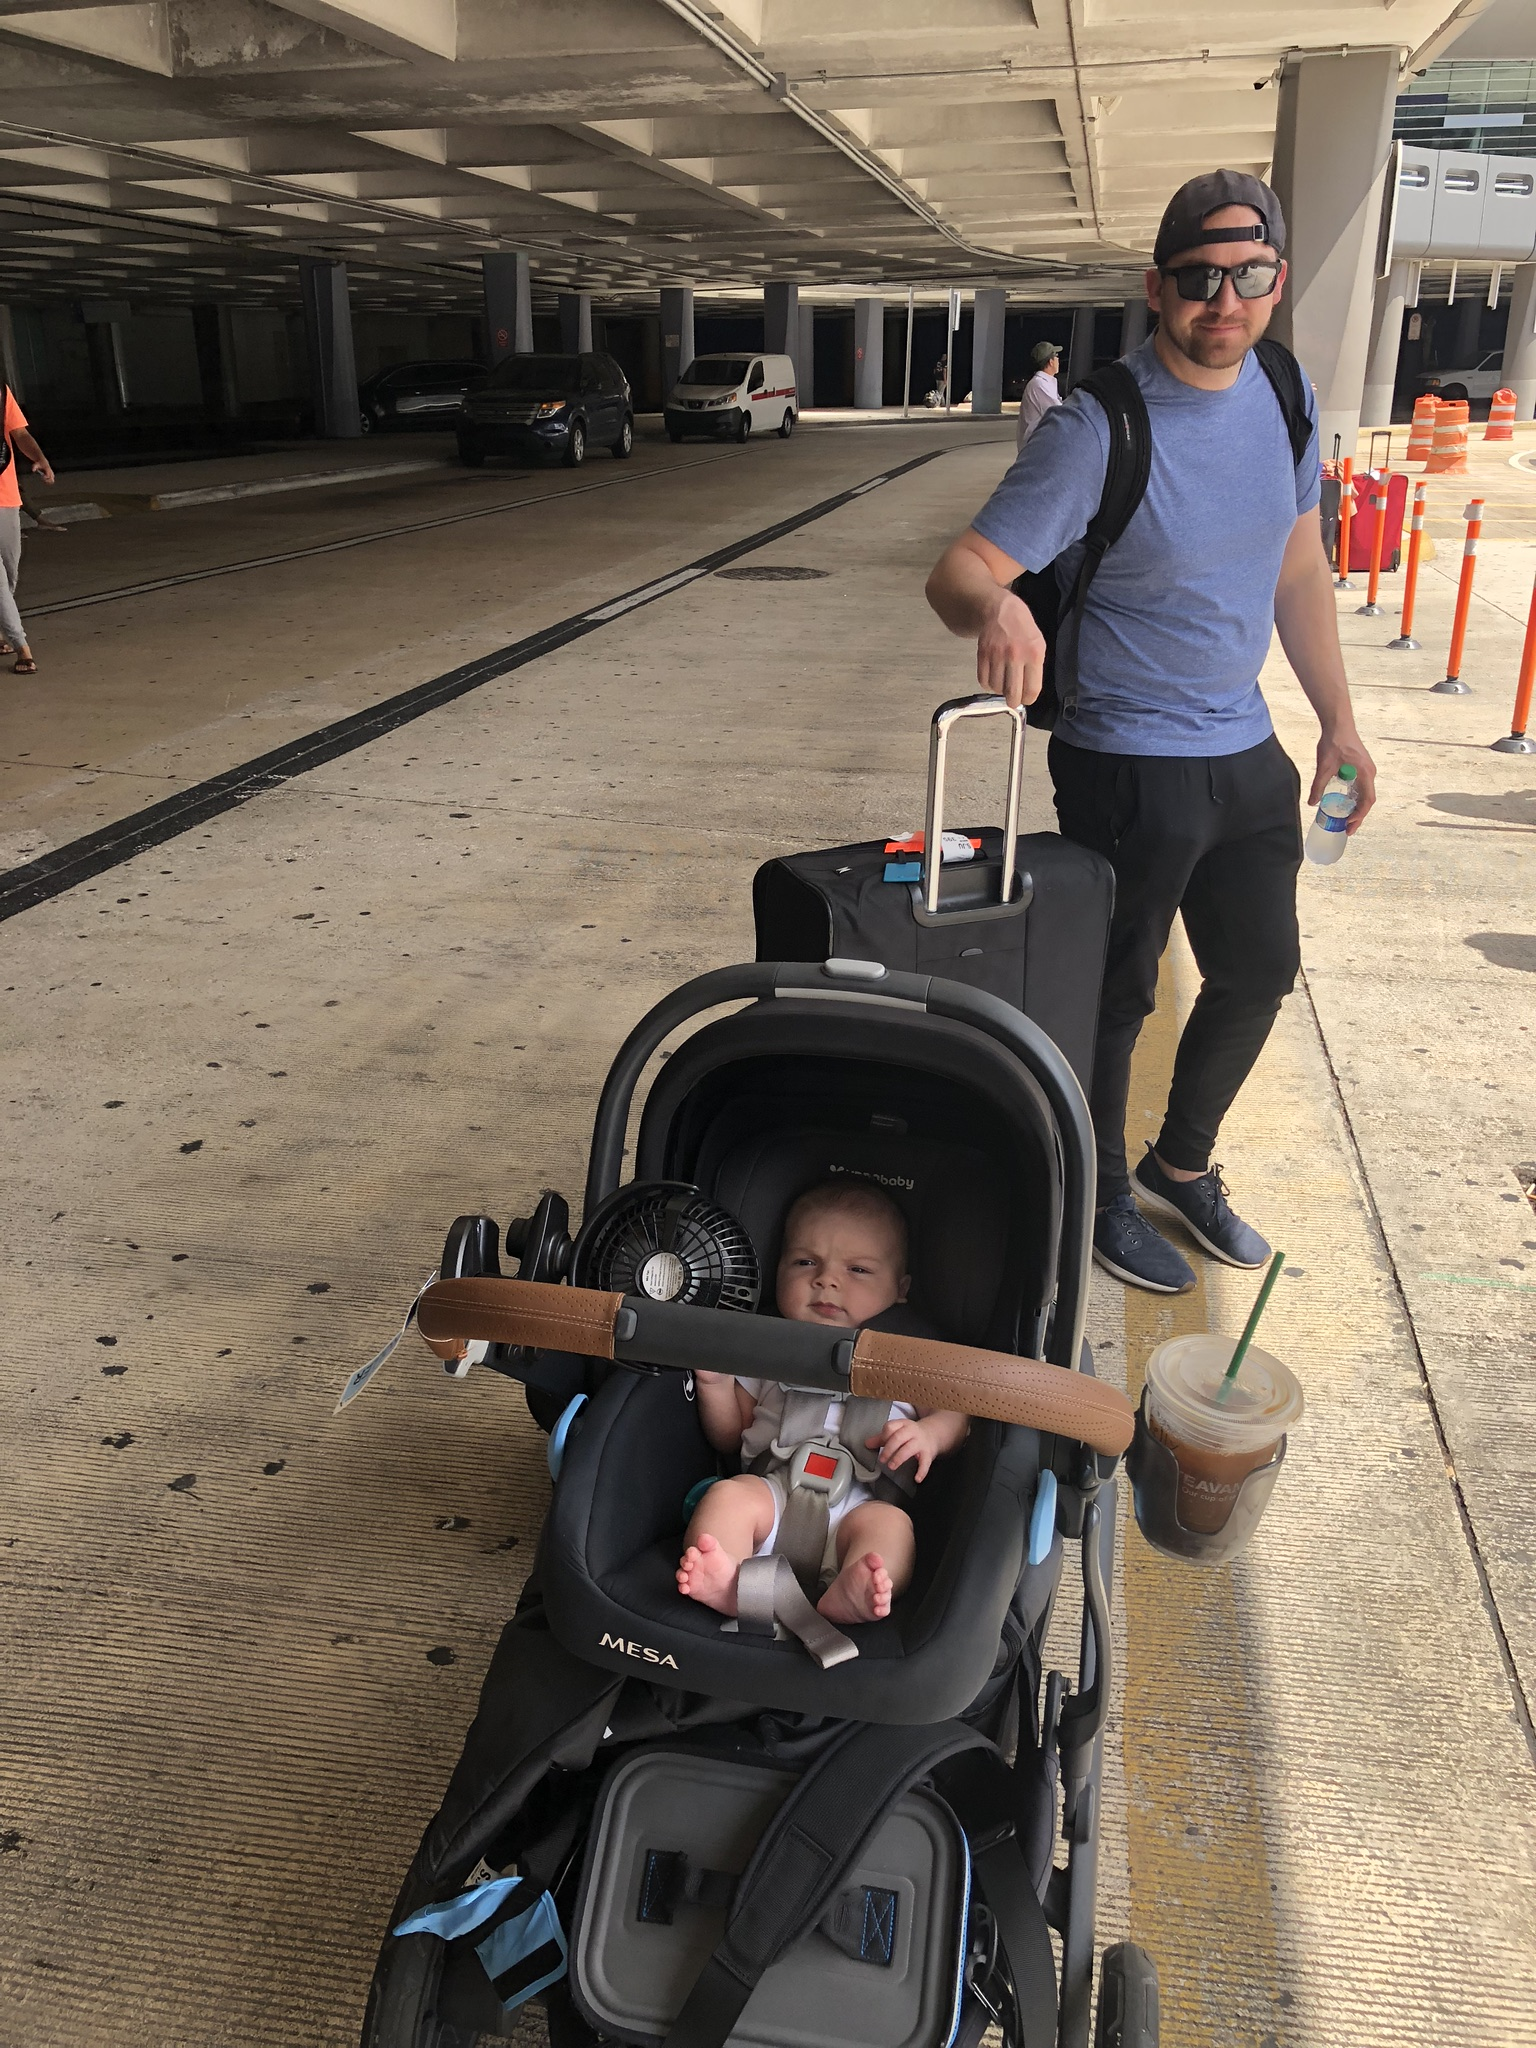 Landing in Puerto Rico. Remy's stroller decked out with all of our gear! And an iced coffee, of course.